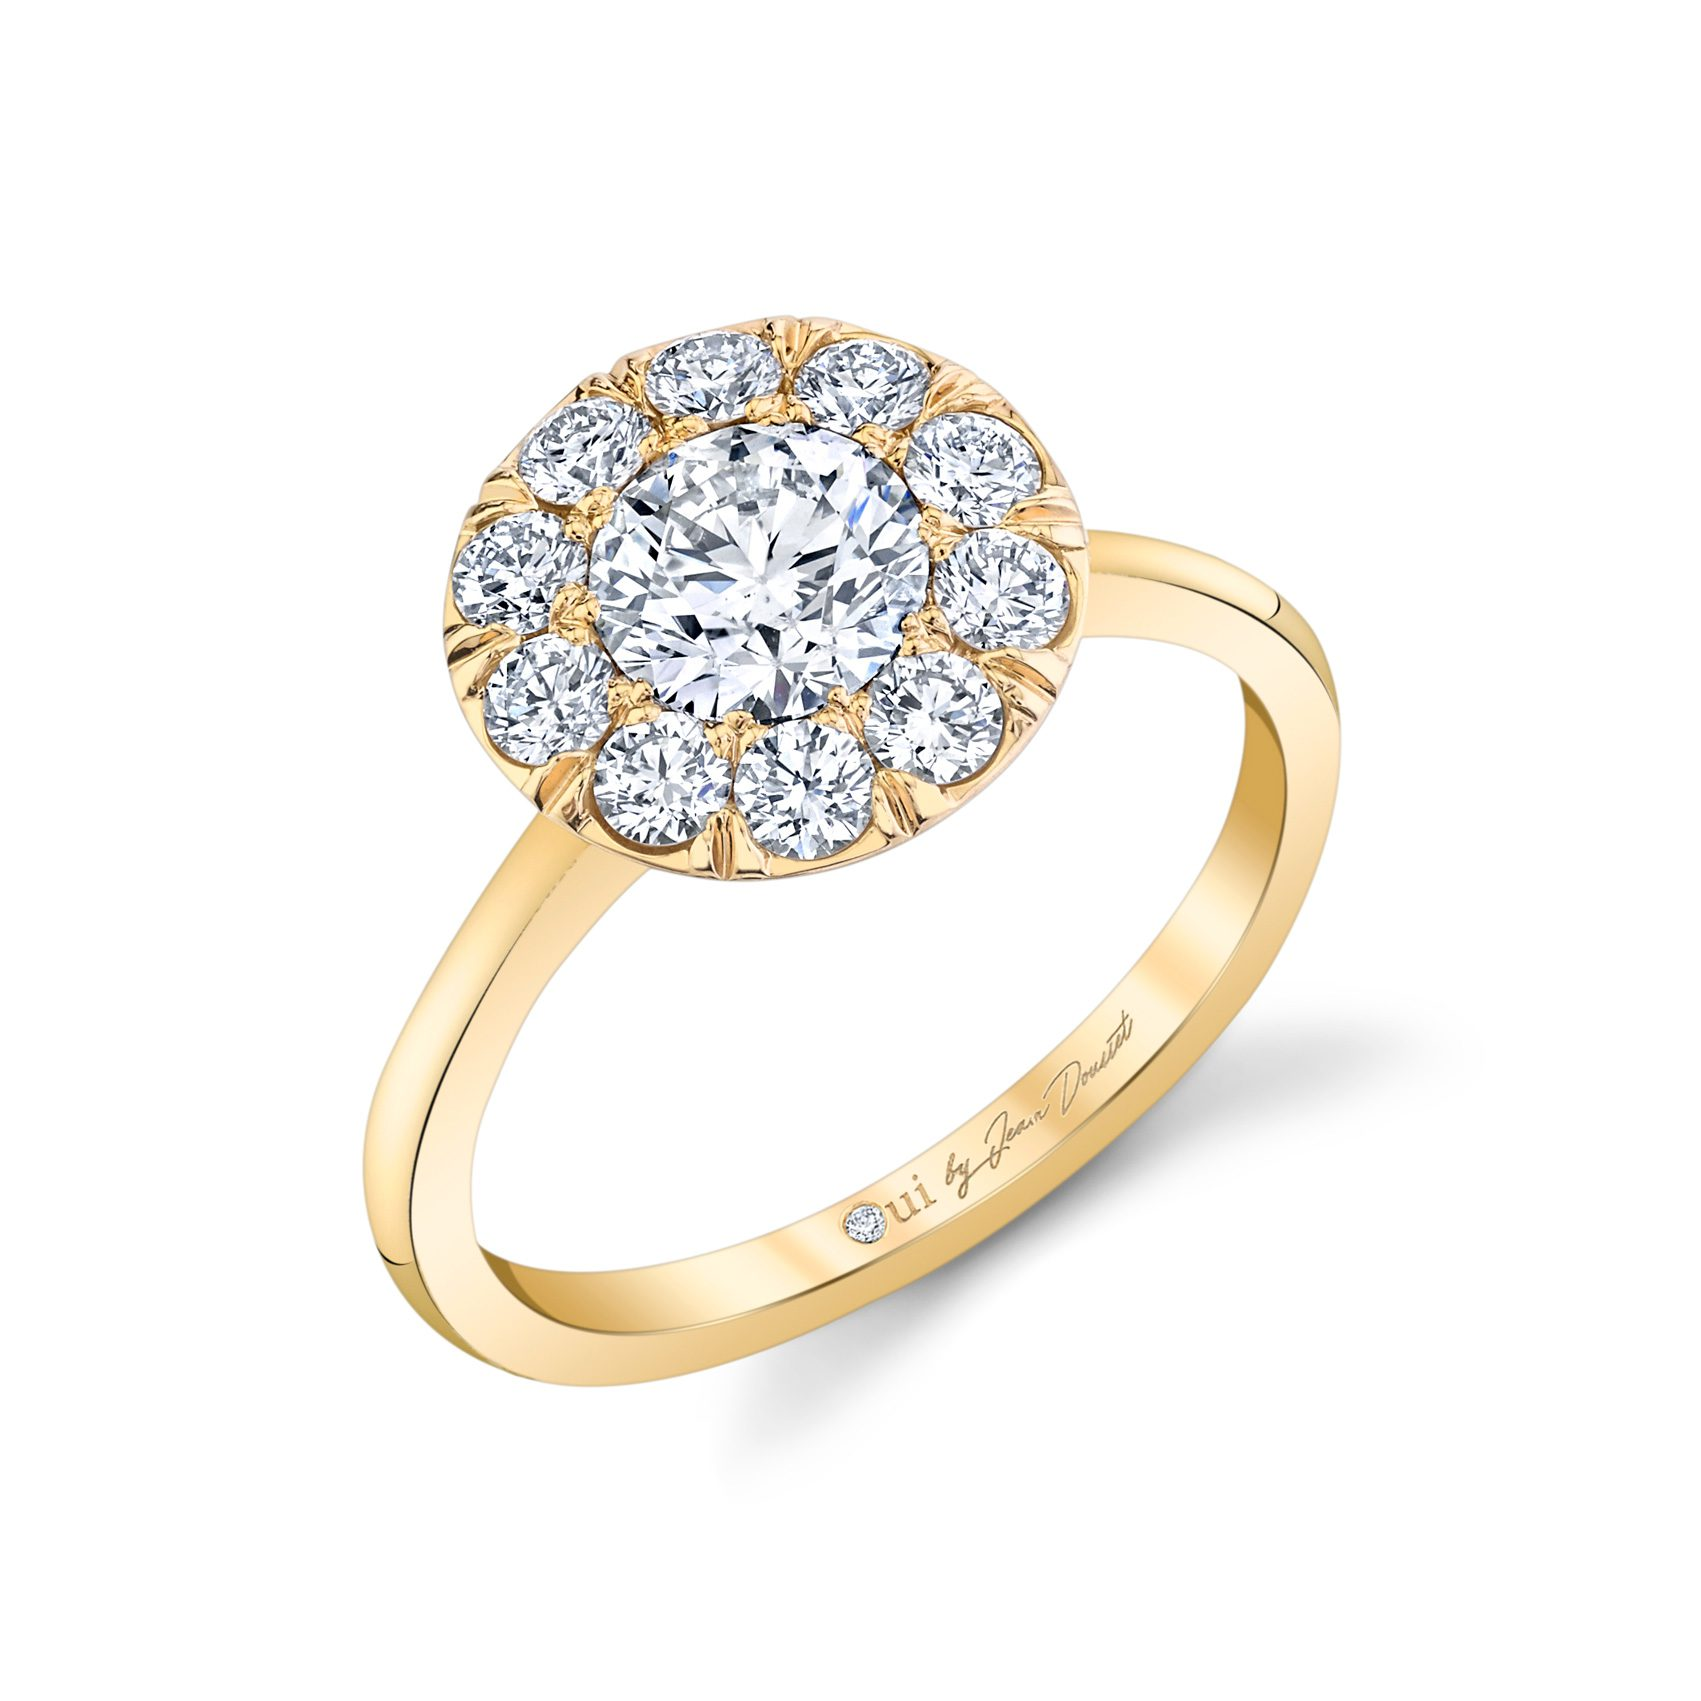 Colette Floating Round Brilliant Seamless Solitaire® Engagement Ring with a sold band in 18k Yellow Gold Profile View by Oui by Jean Dousset